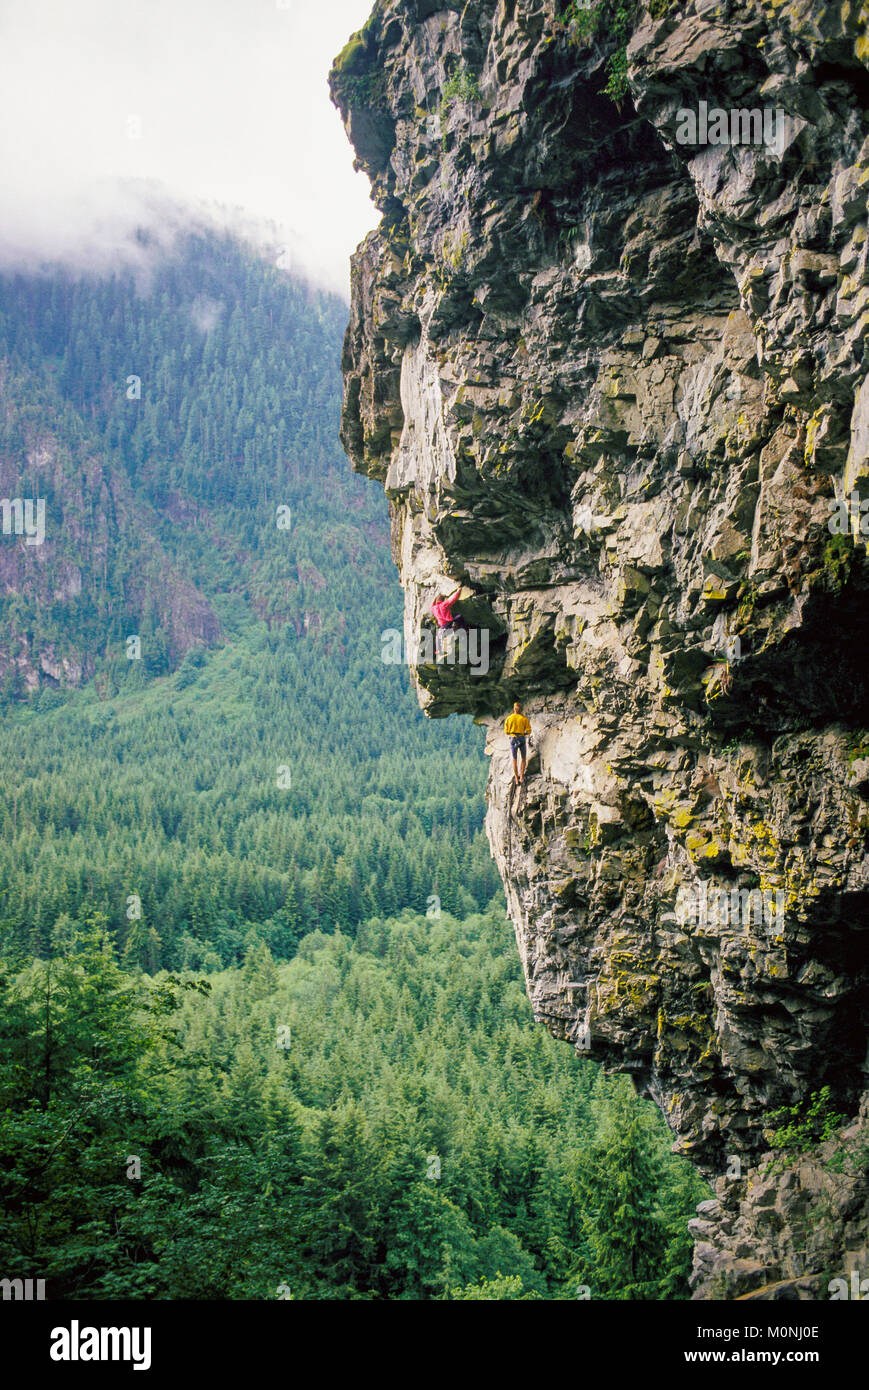 Deux hommes d'une escalade falaise en surplomb de l'embranchement nord de la rivière Snoqualmie, Washington, Photo Stock